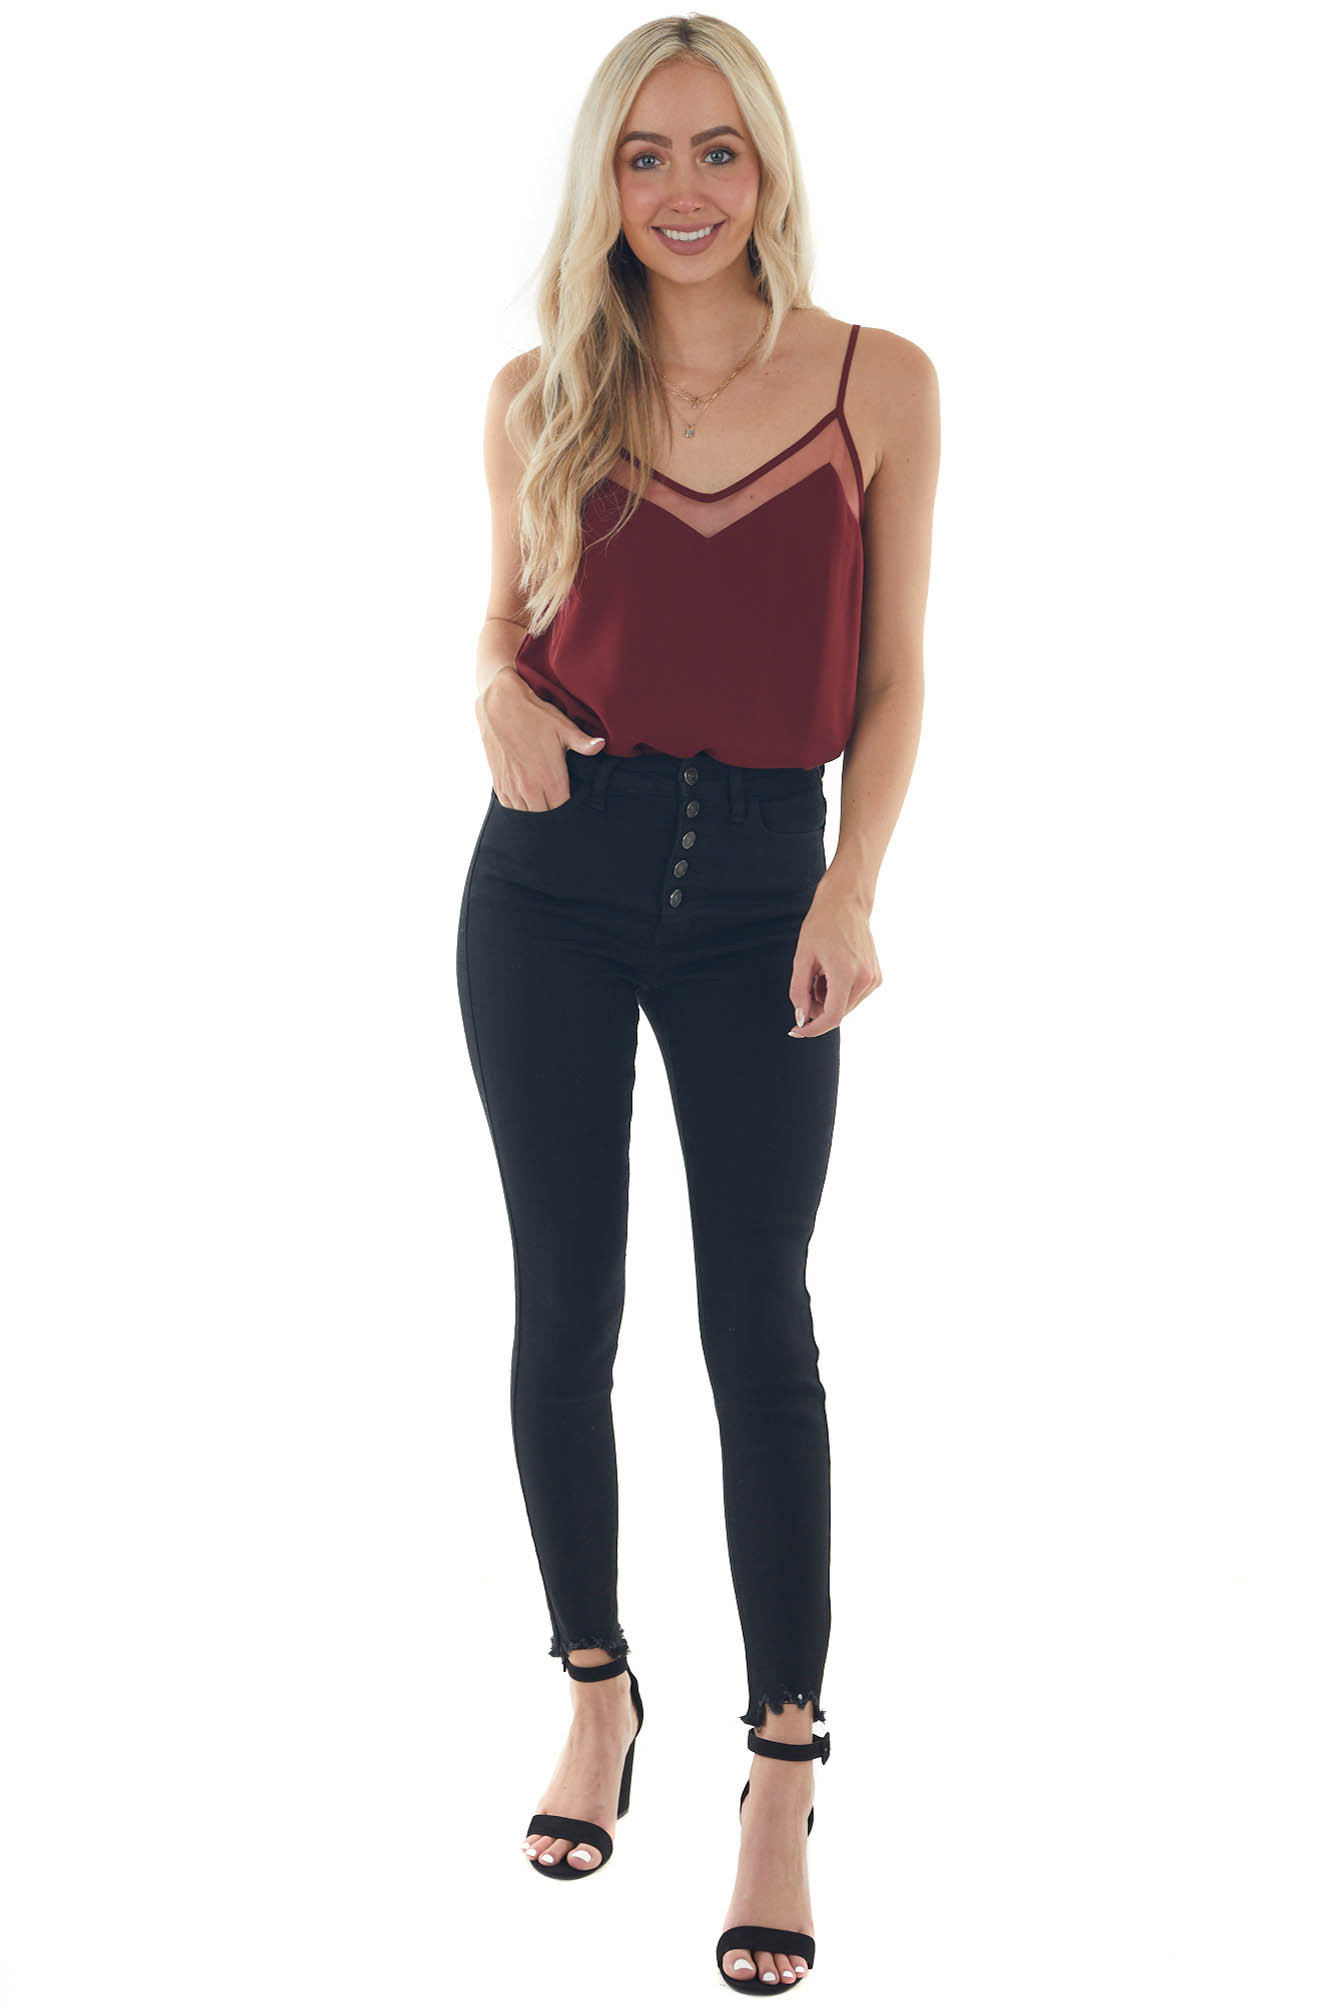 Sangria Tank Top with V Neck and Mesh Trim